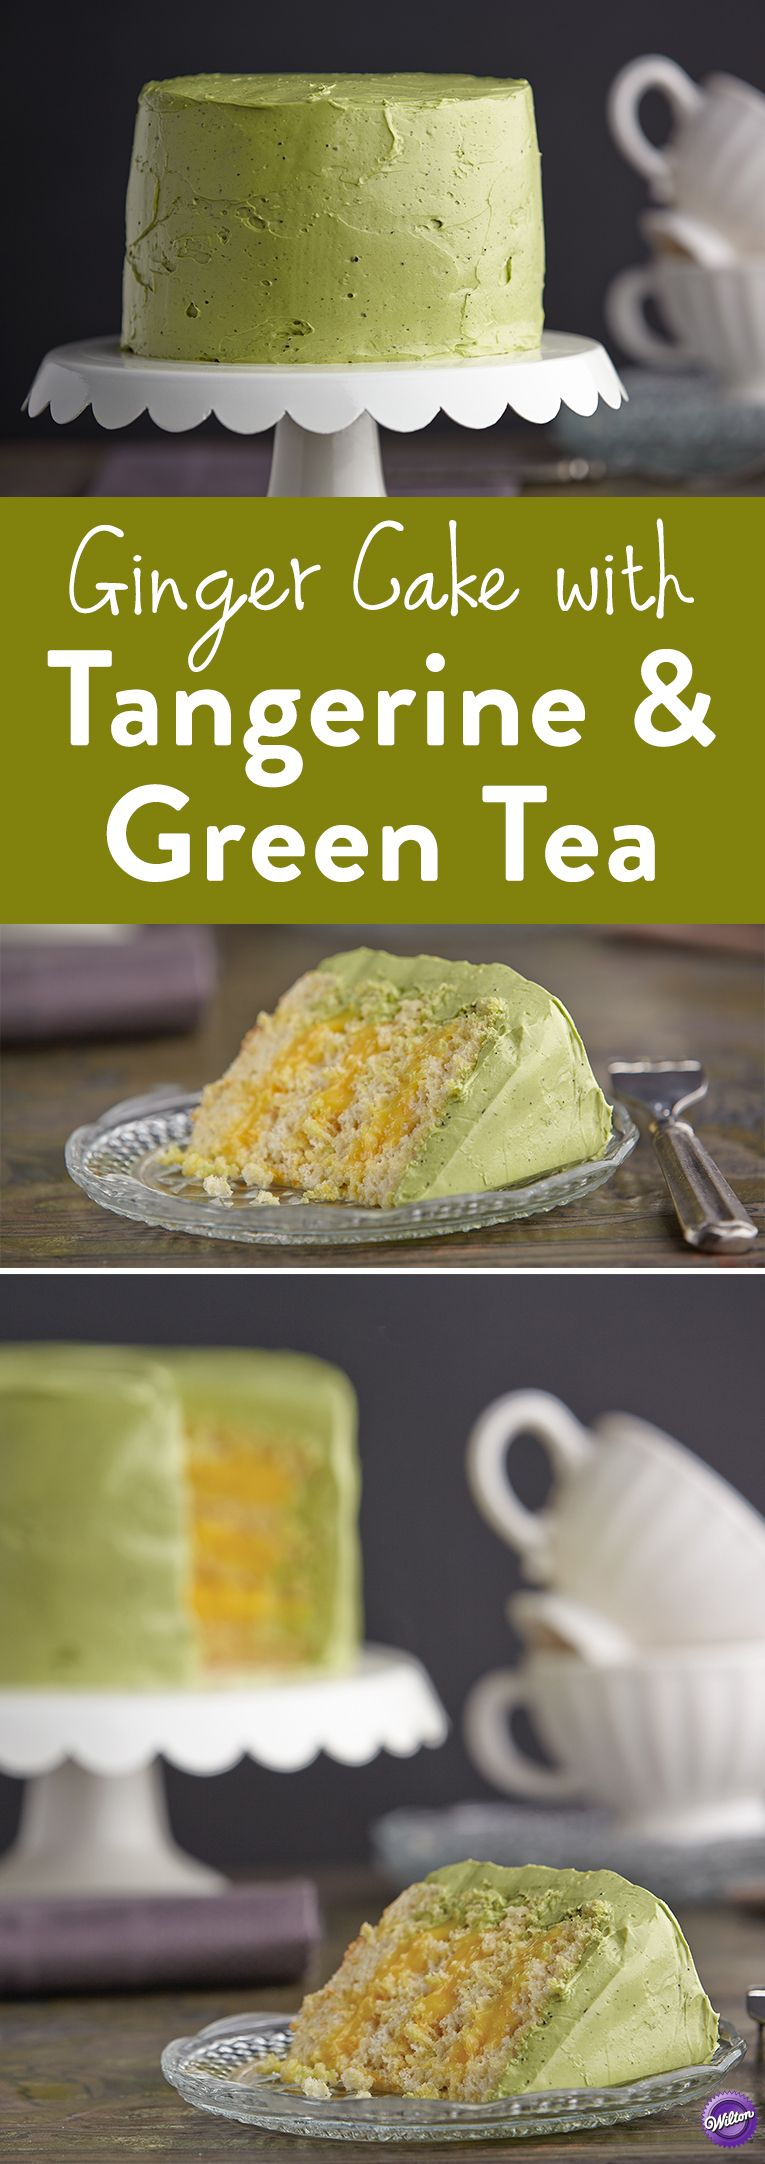 Ginger Cake With Tangerine And Green Tea Recipe